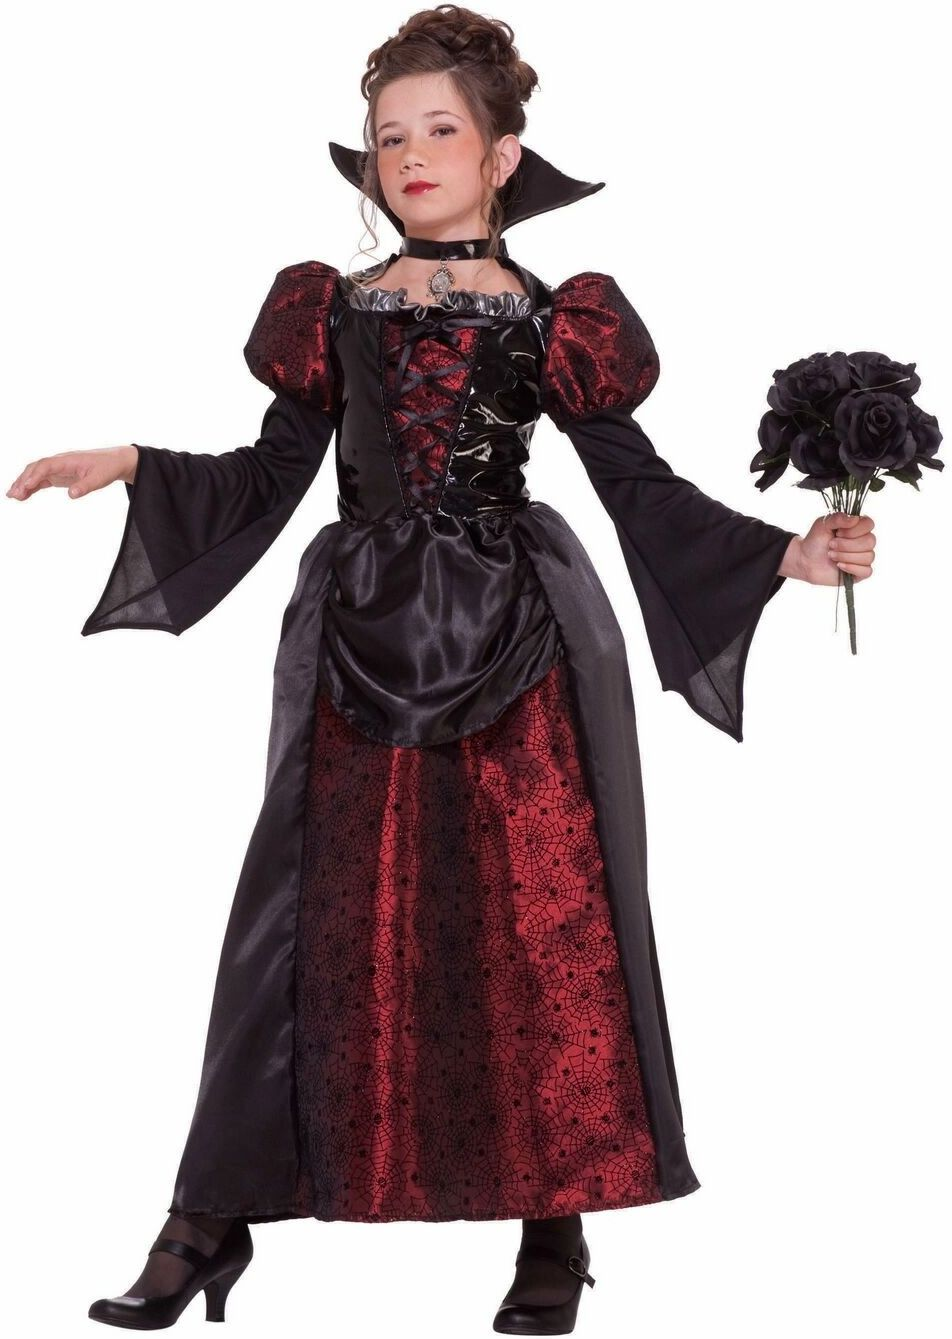 vampire miss kids costume halloween pinterest. Black Bedroom Furniture Sets. Home Design Ideas